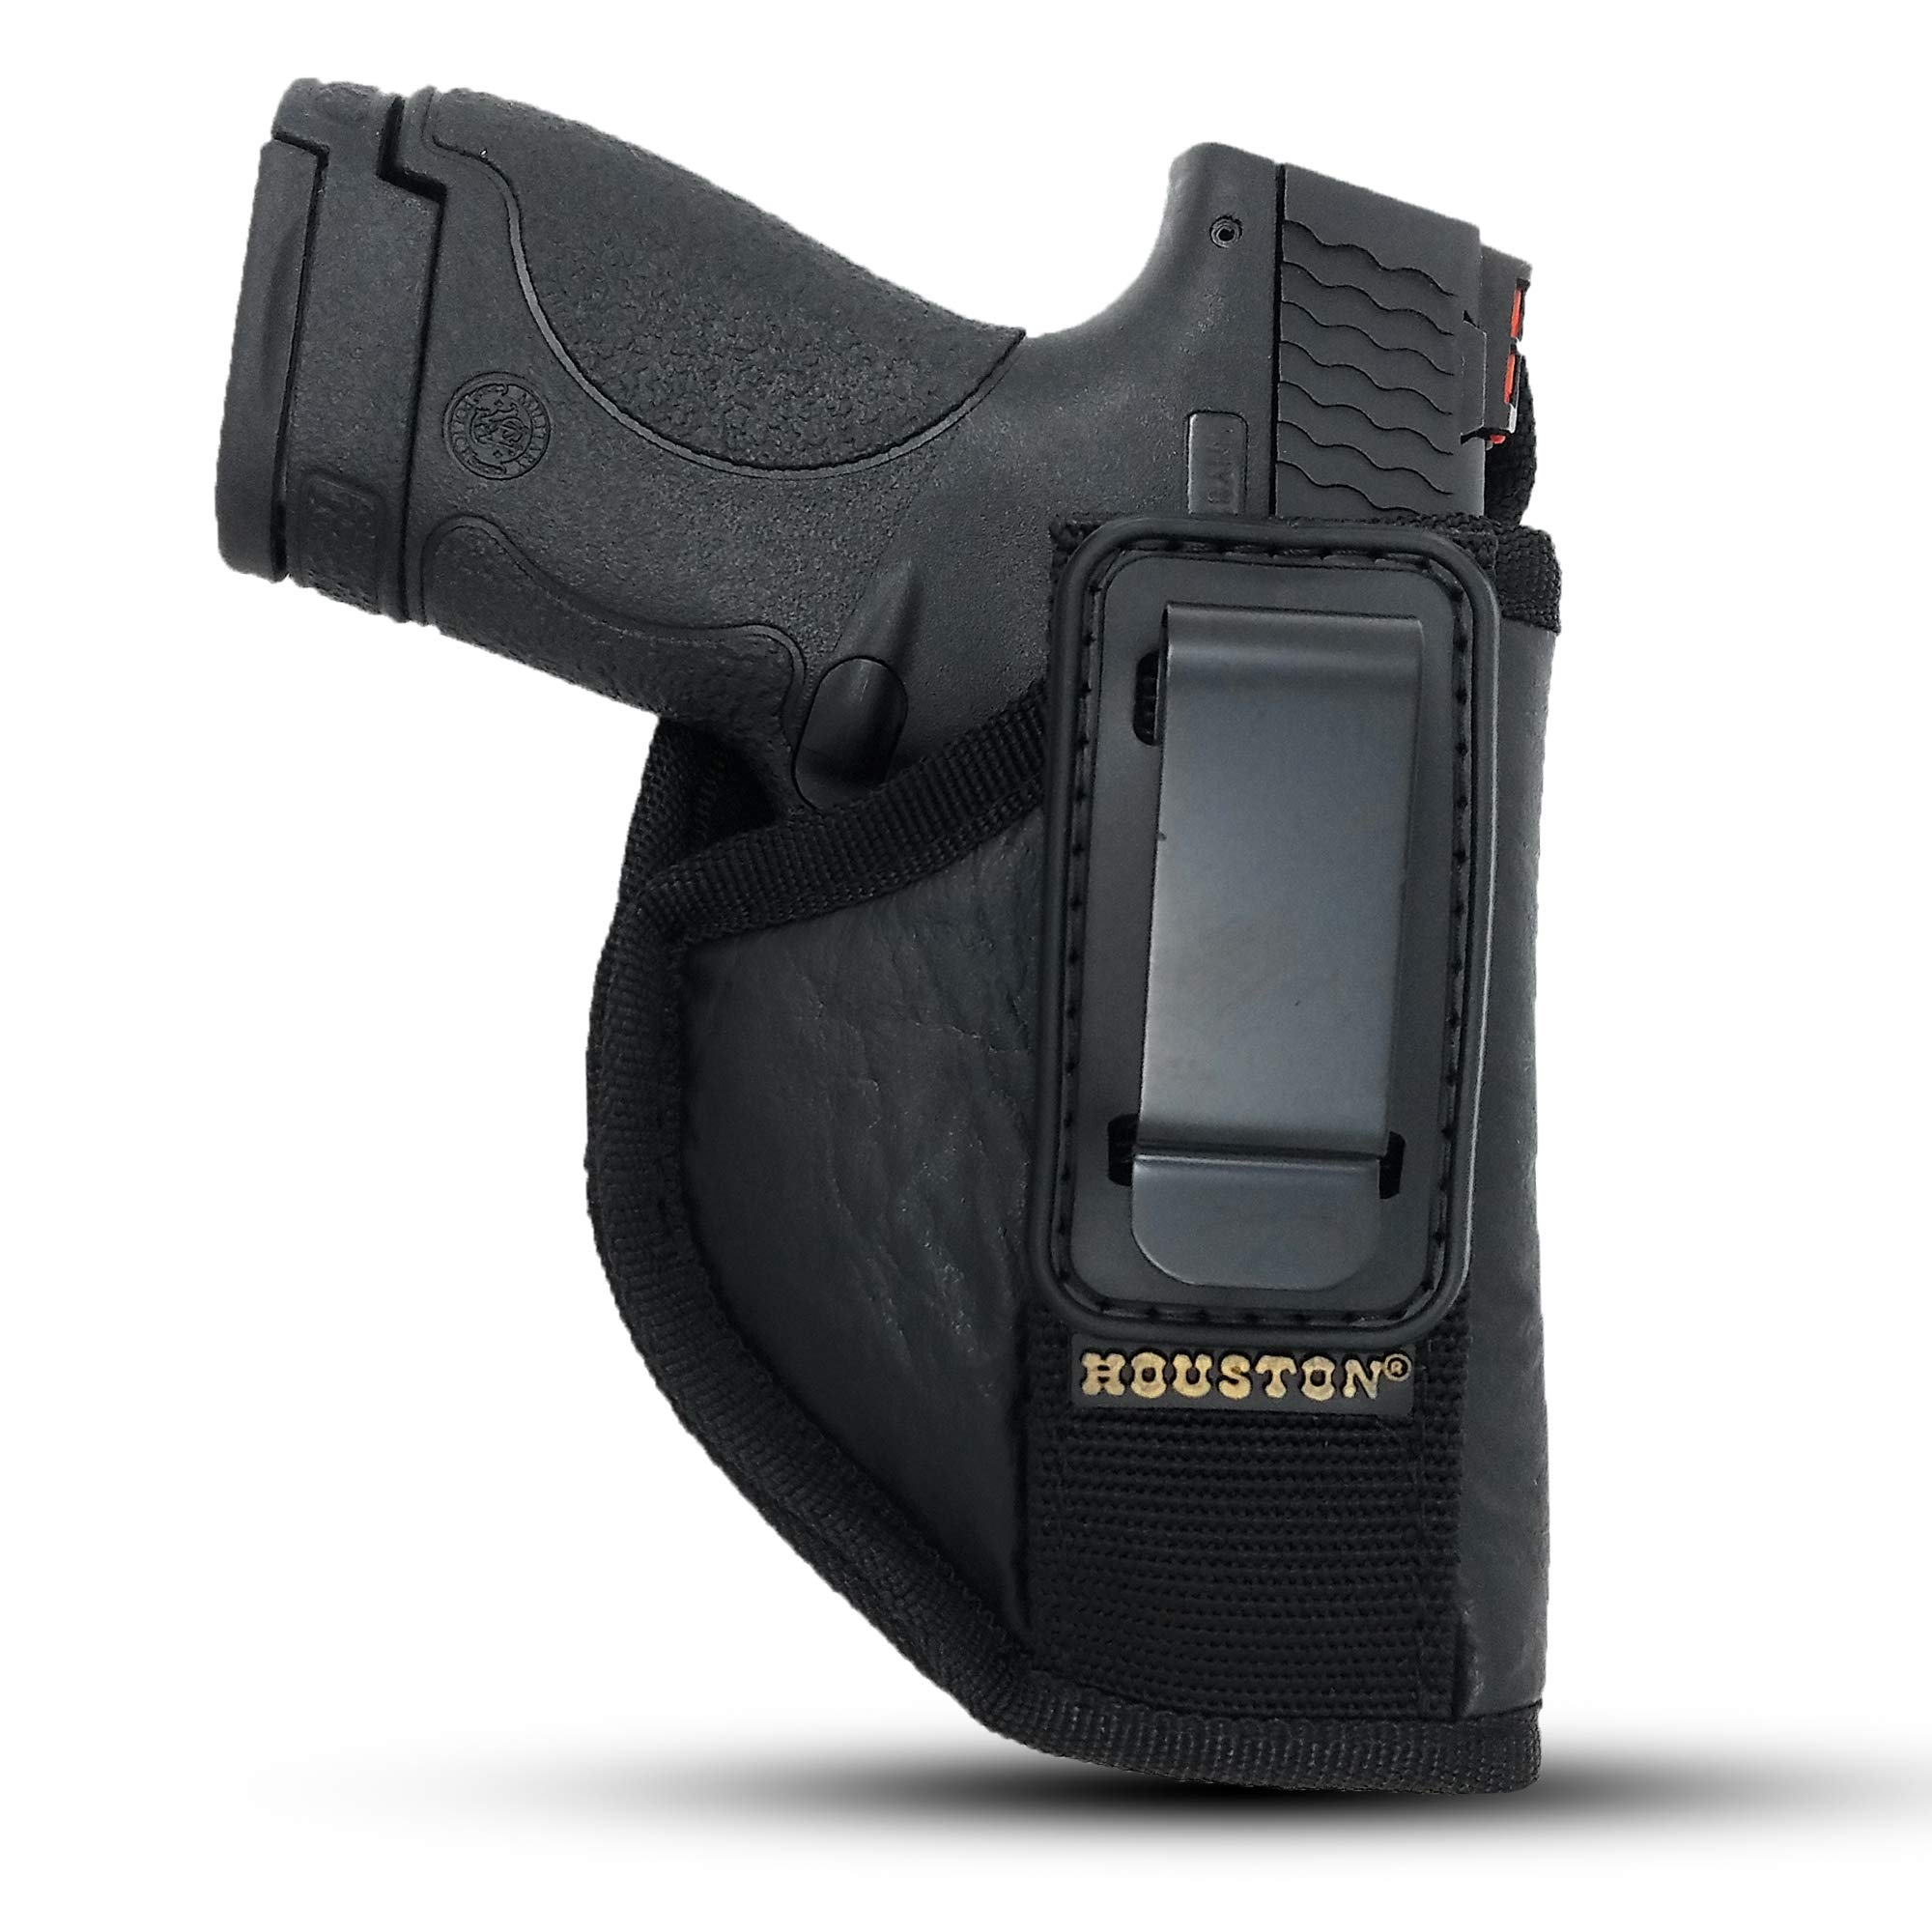 IWB Tuckable Gun Holster by Houston - ECO Leather Concealed Carry Soft Material   Fits Glock 26/27/33, Shield, XDS, Taurus 709, Taurus Pro C, Walther P22, Beretta Nano, SCCY Sky.Ruger LC9 (Right) by Houston Gun Holsters